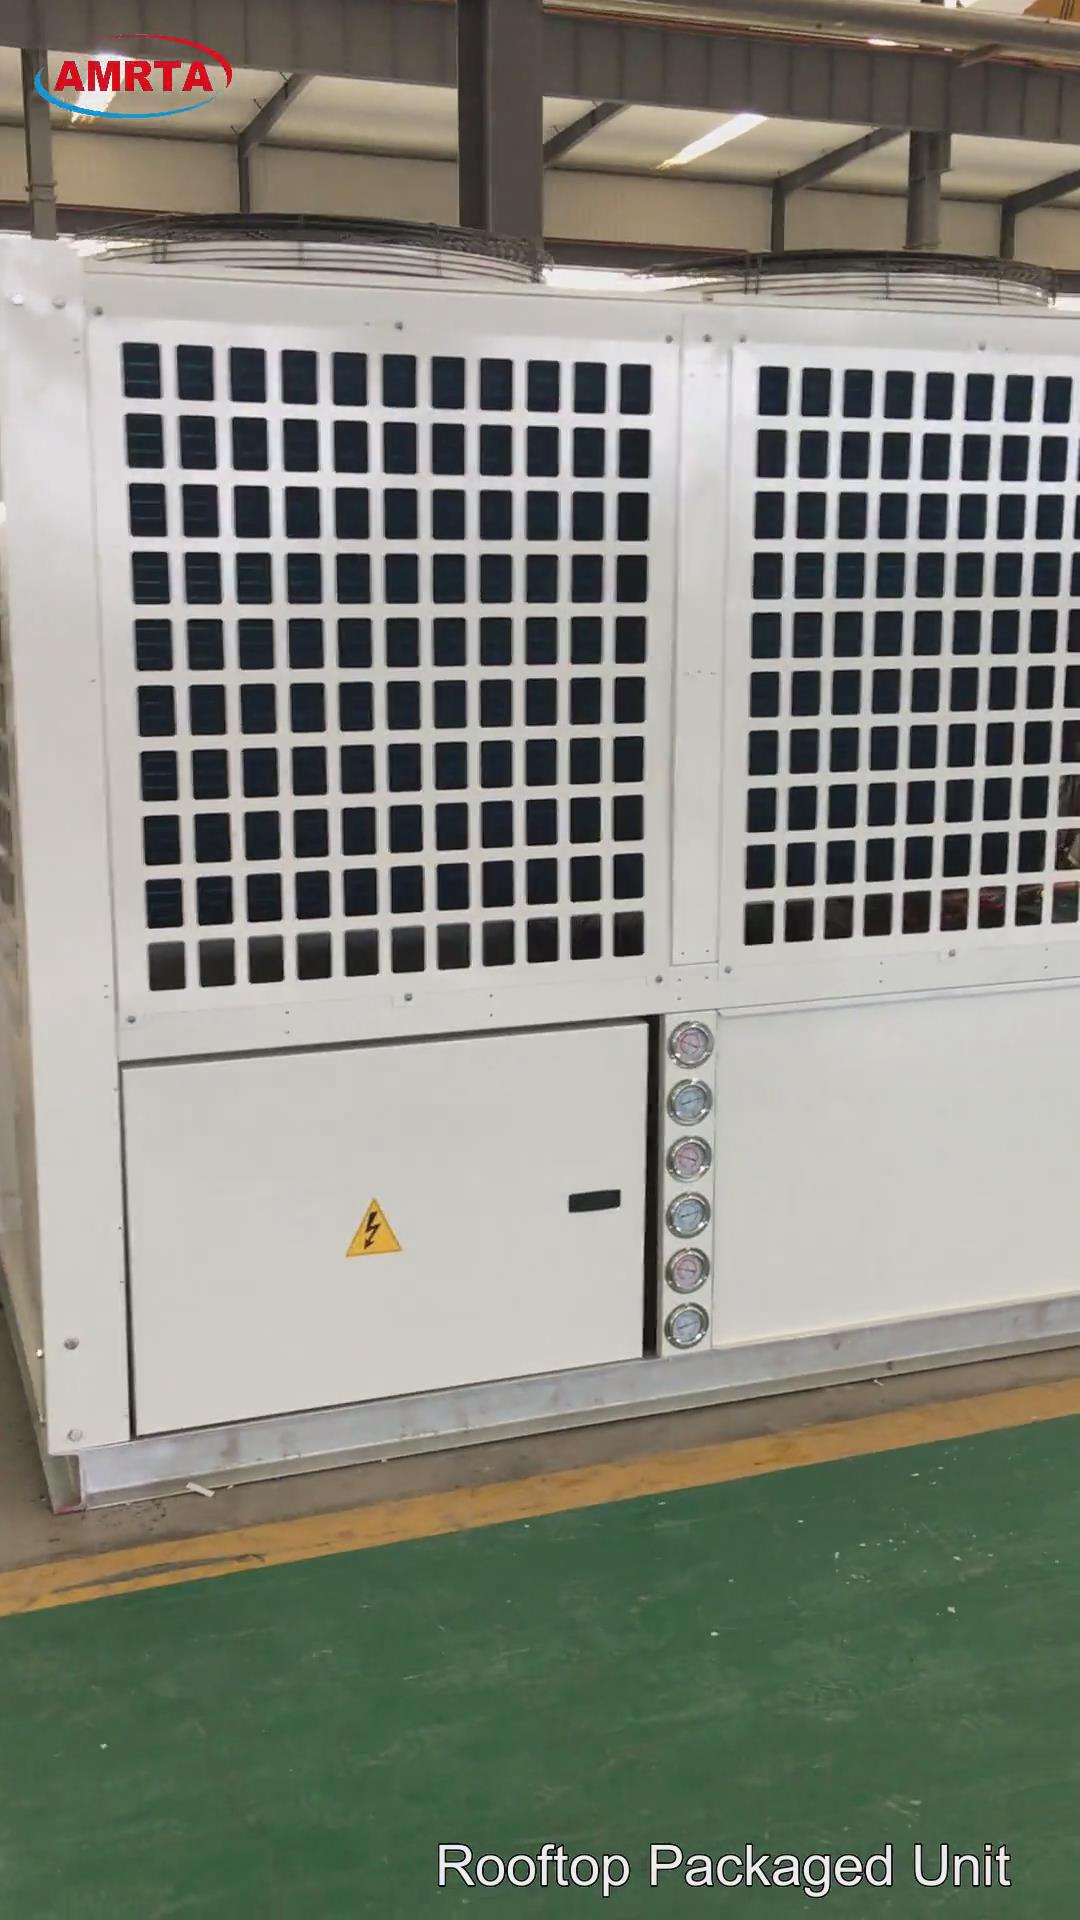 Amrta 105kW Rooftop Packaged Unit